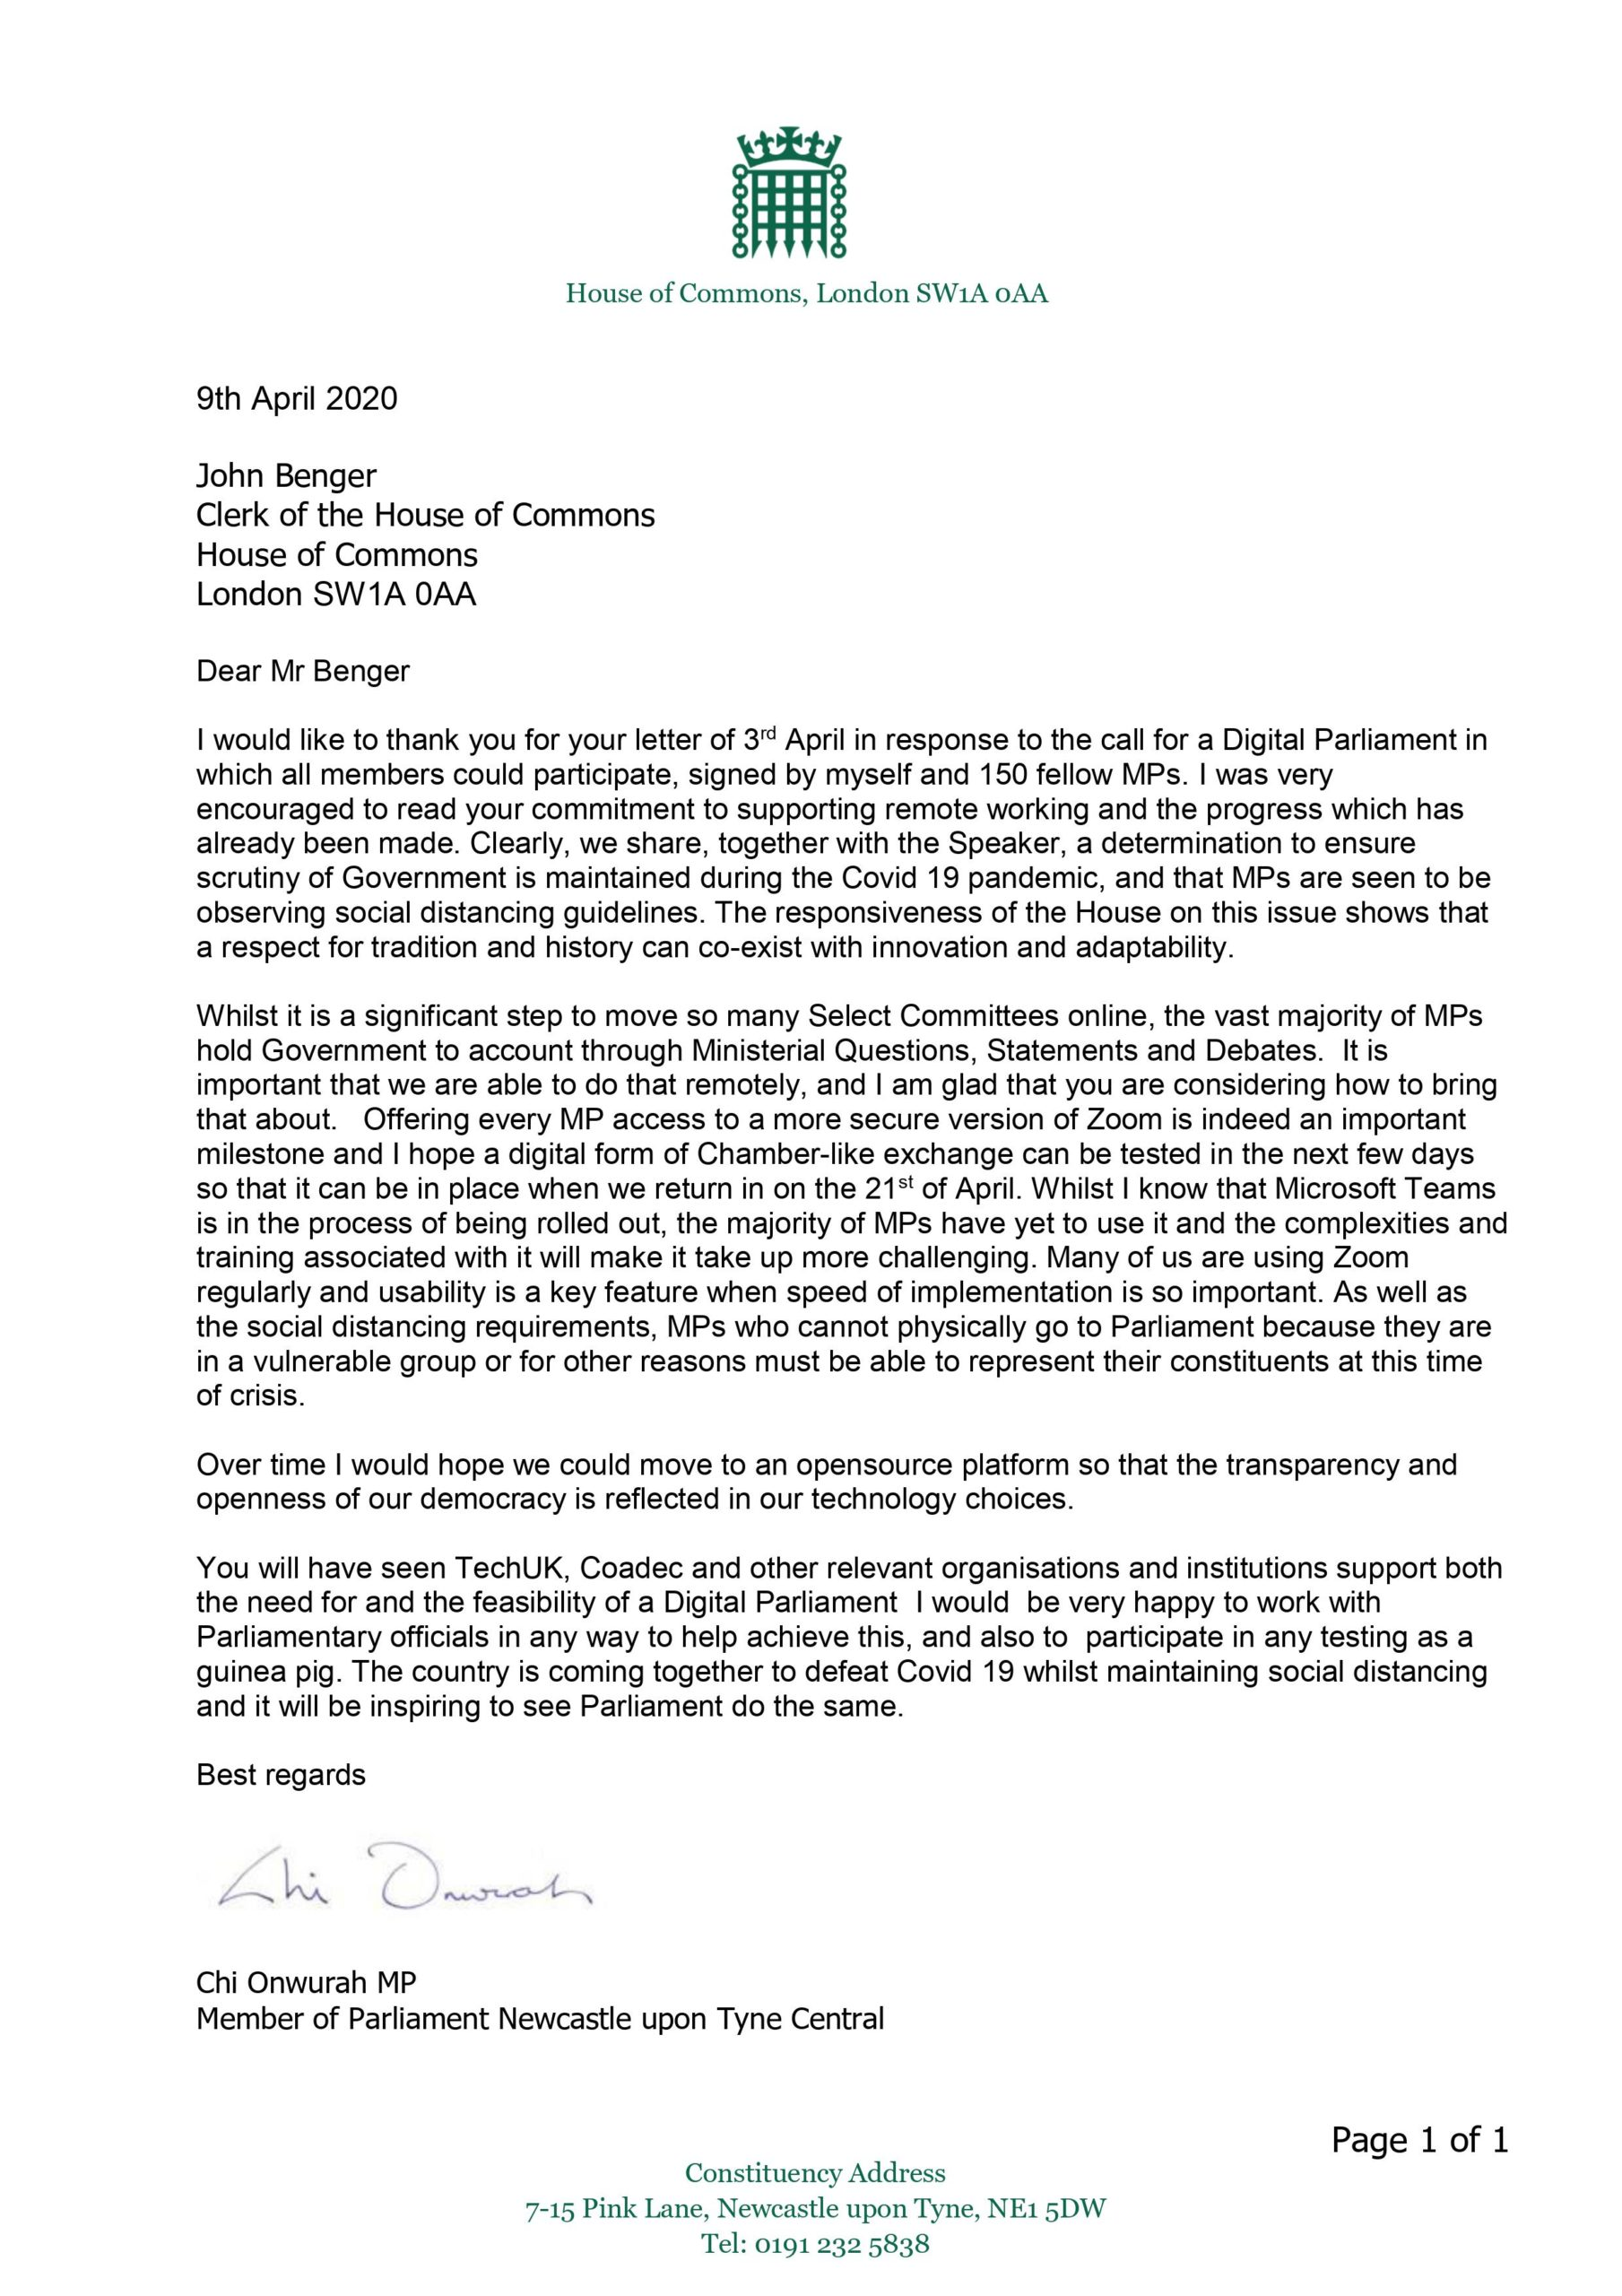 Chi responds to the Clerk of the House of Commons regarding a digital parliament